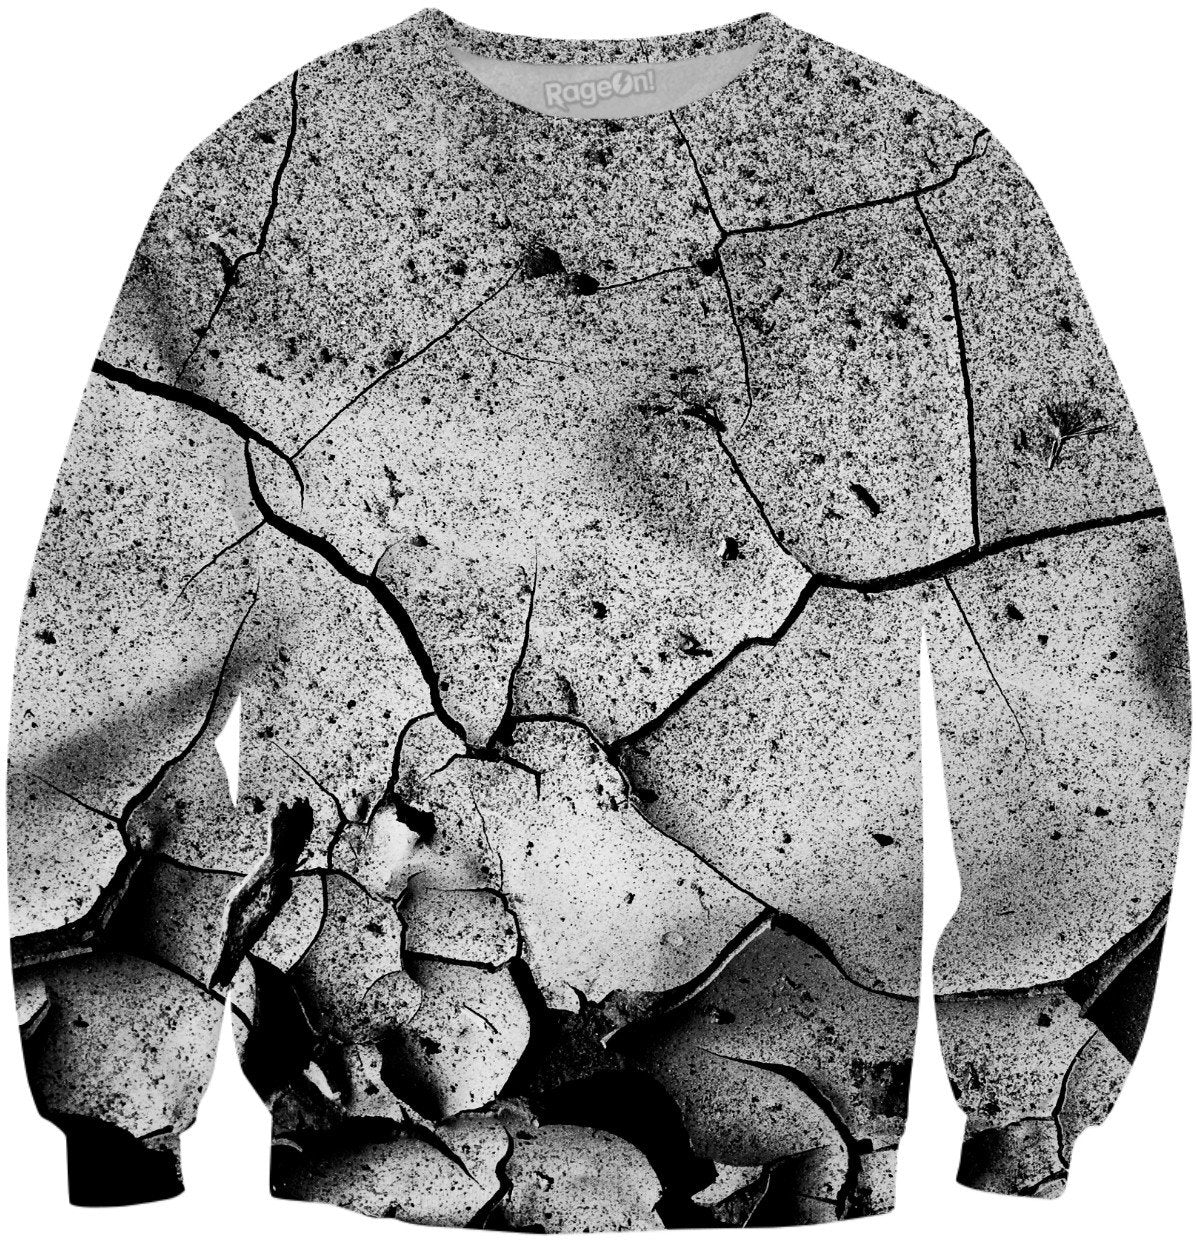 Abstract Cracks Sweatshirt - TShirtsRUS.co